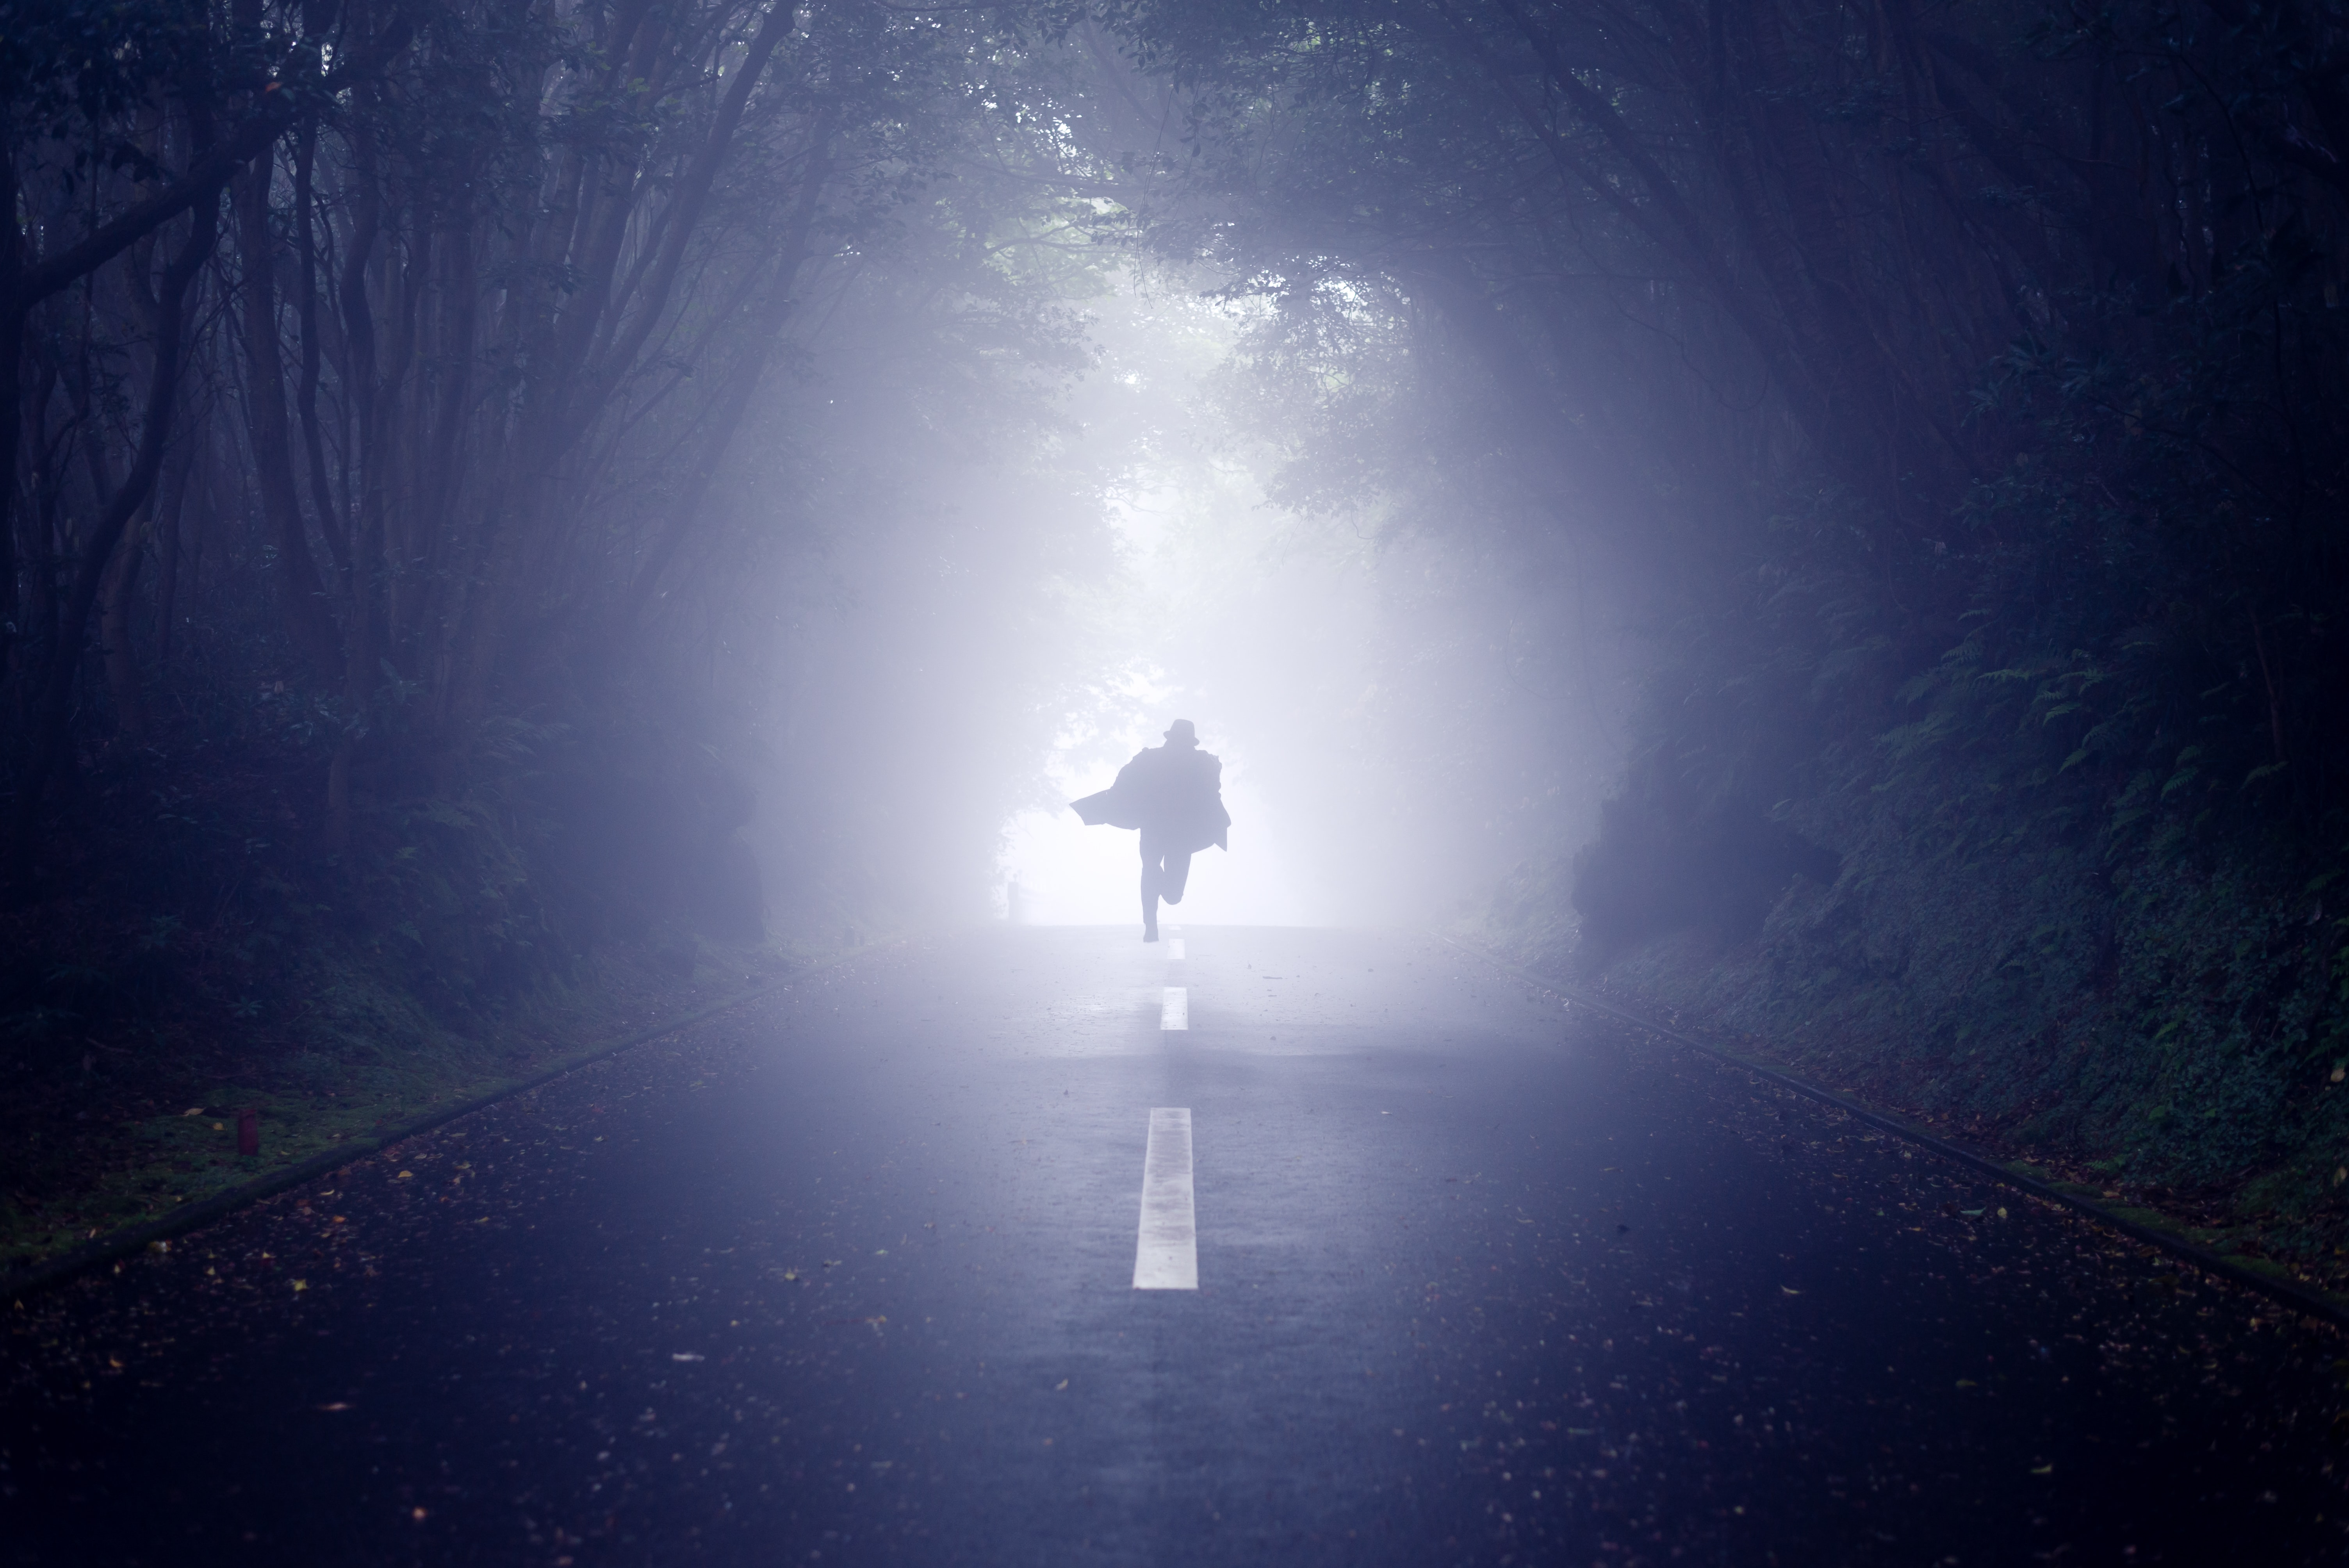 person running road between trees